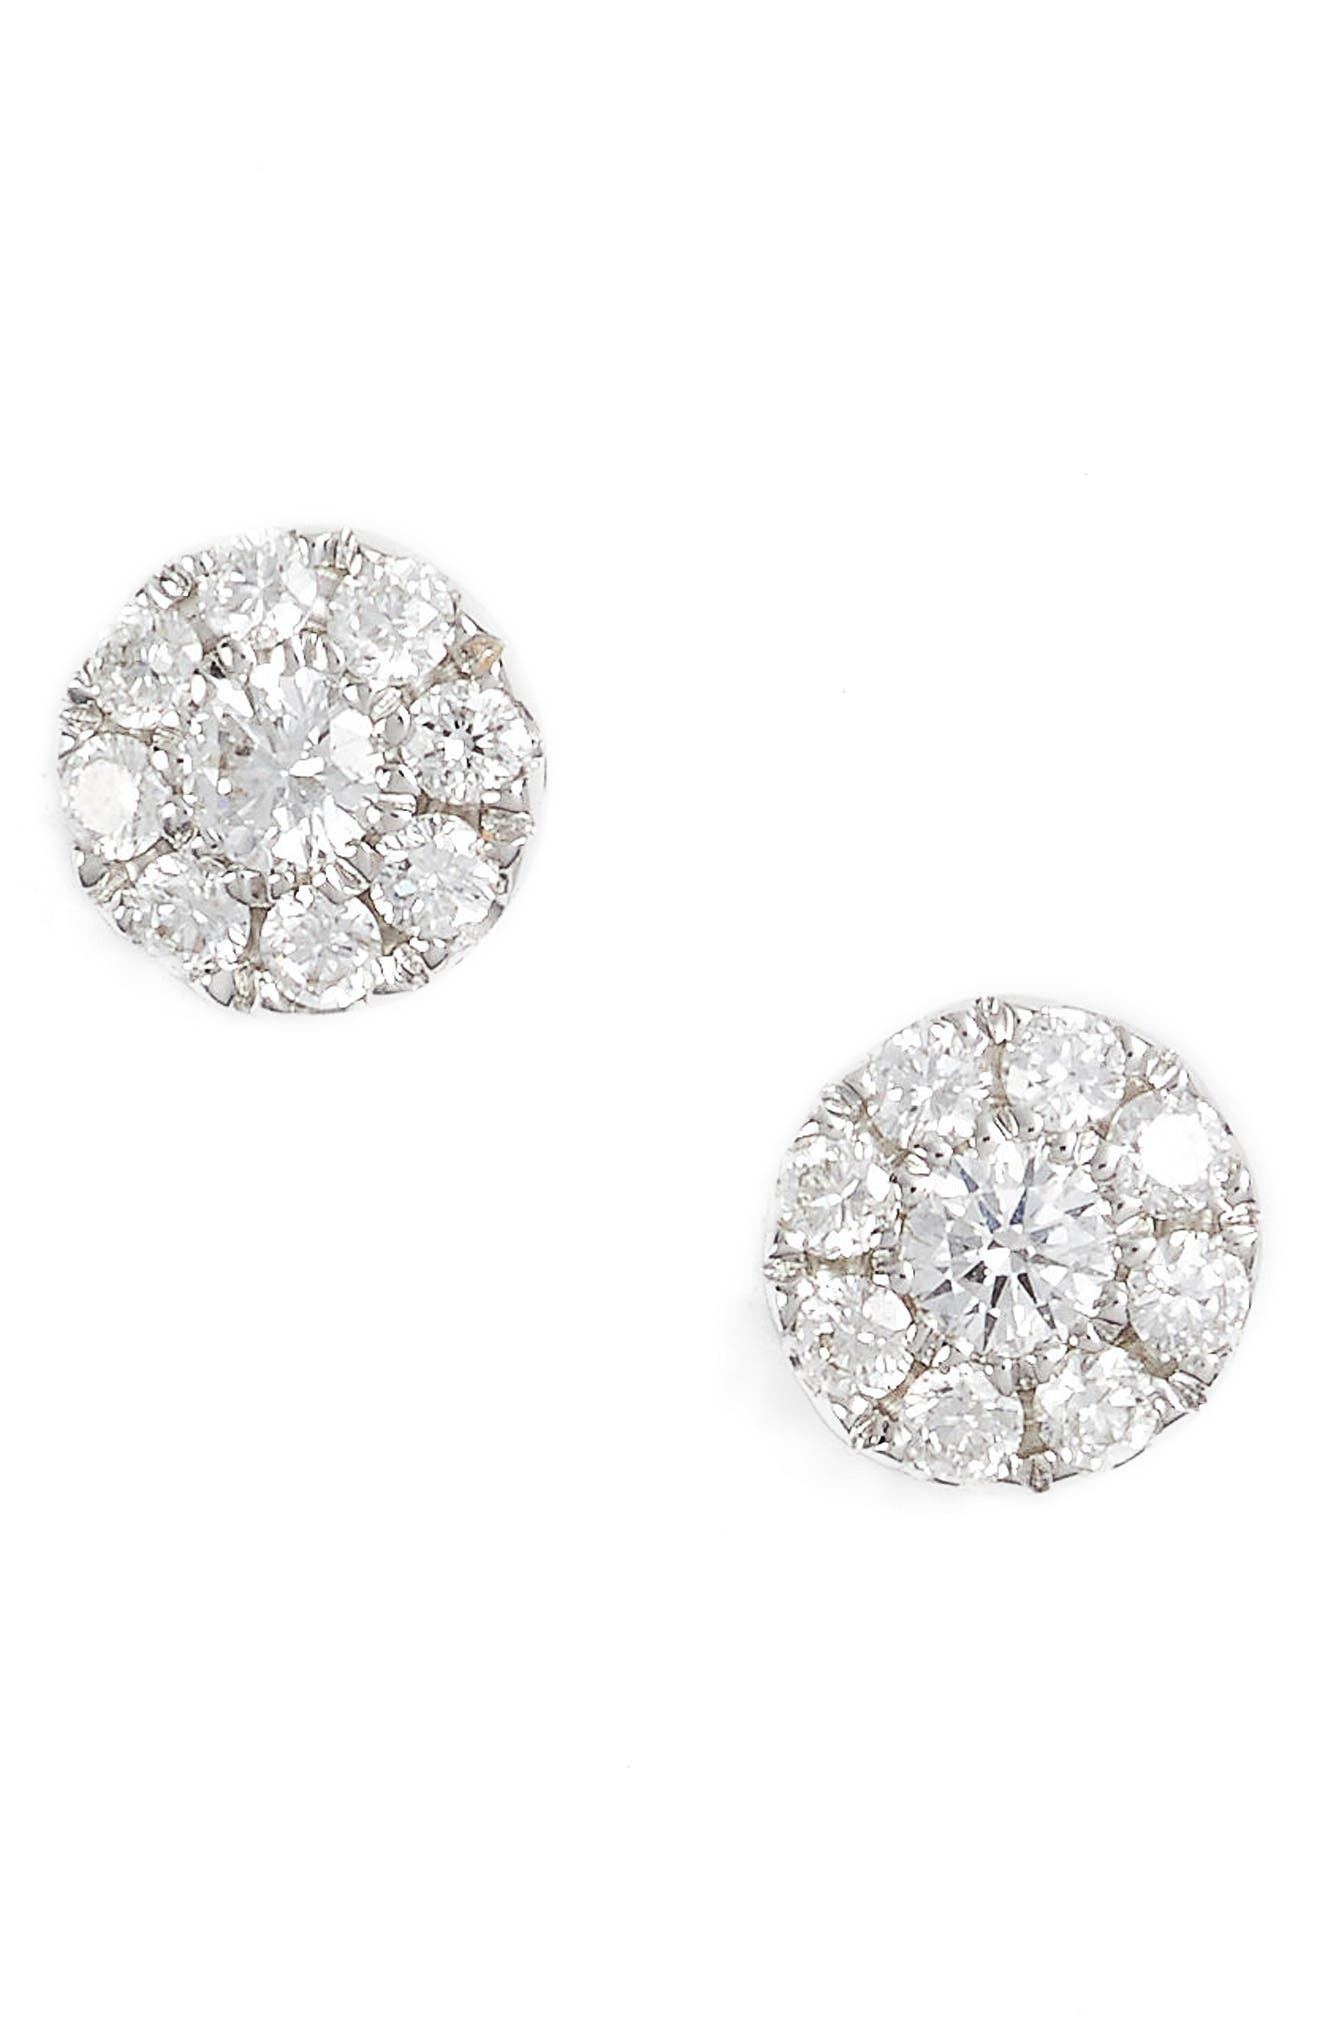 Bony Levy Simple Obsessions Pavé Diamond Stud Earrings (Nordstrom Exclusive)